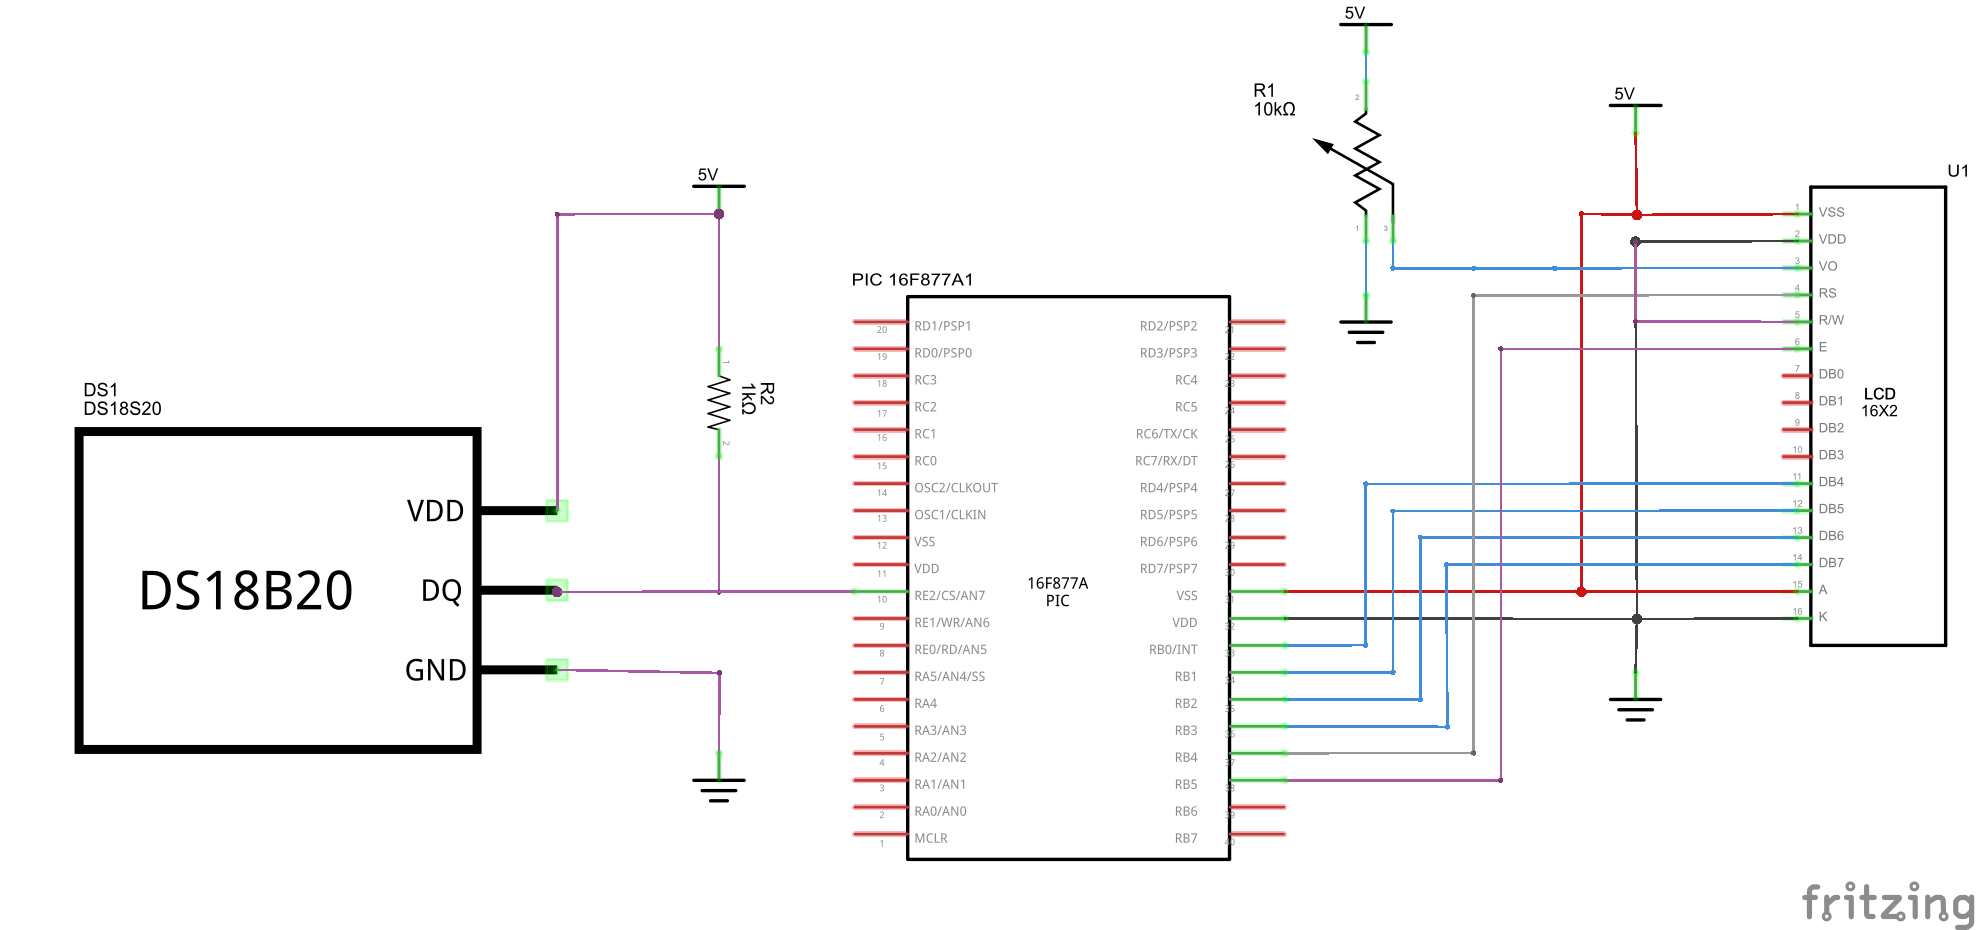 Surprising Pic16F877 And Ds1820 Temperature Sensor Example Pic Learning Wiring Cloud Hemtegremohammedshrineorg